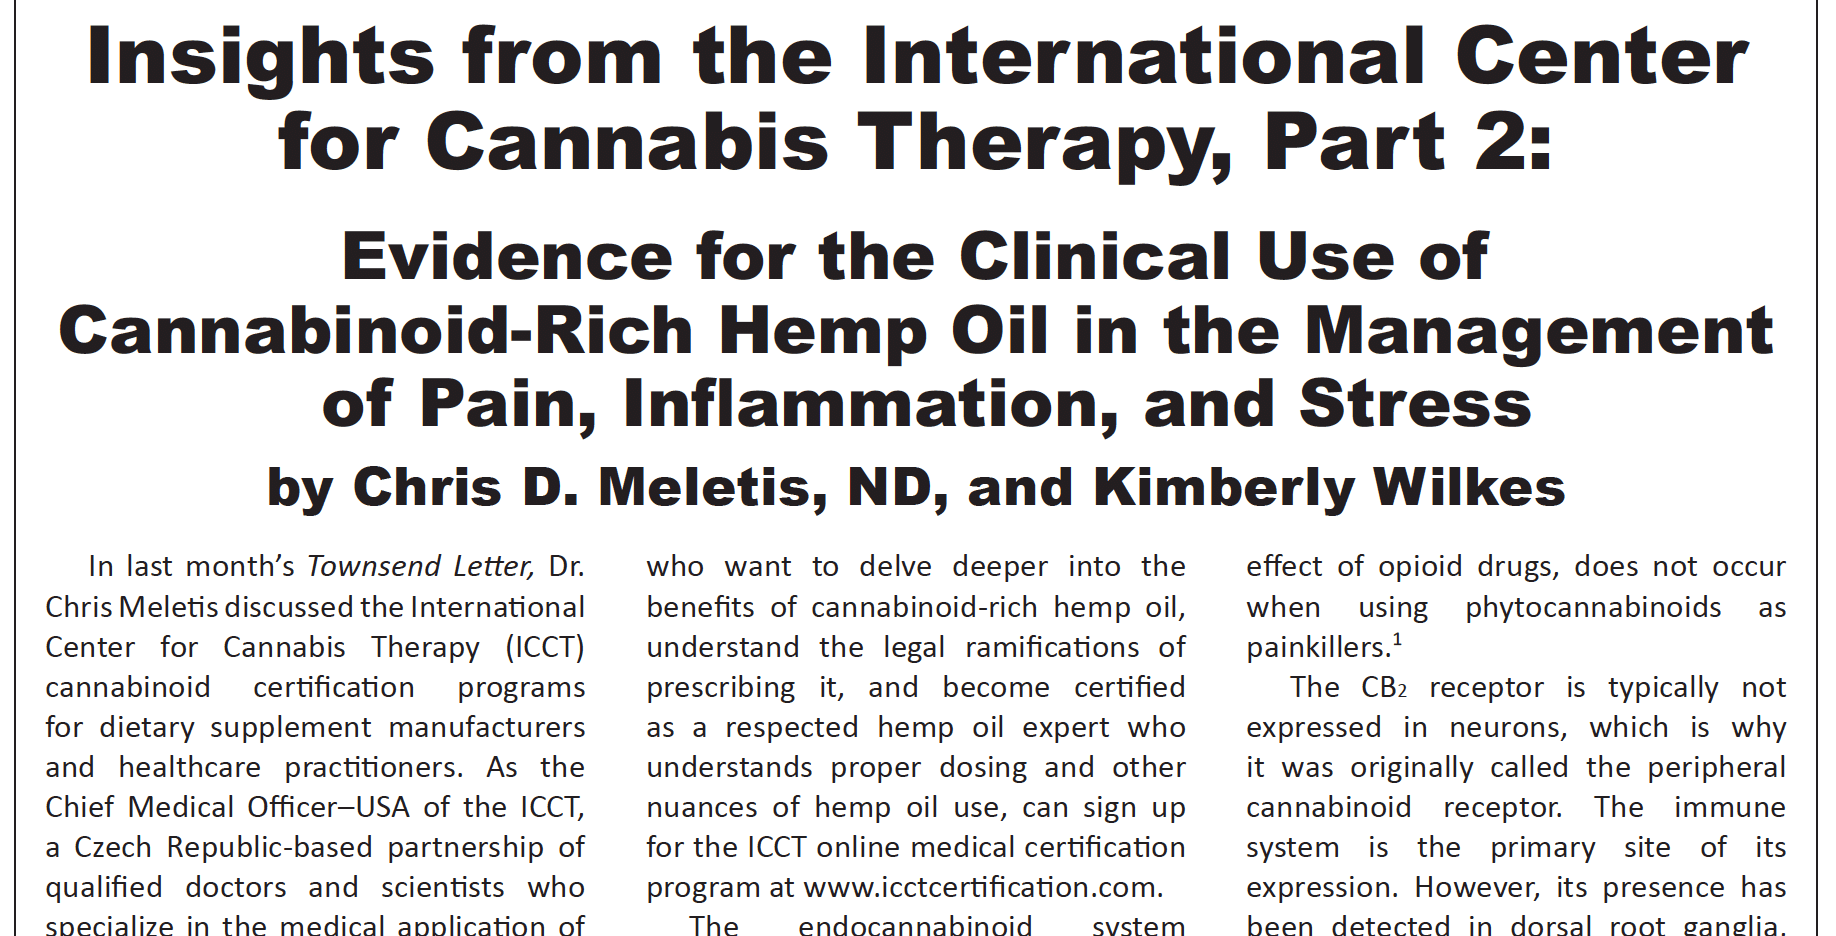 Insights from the International Center for Cannabis Therapy, Part 2